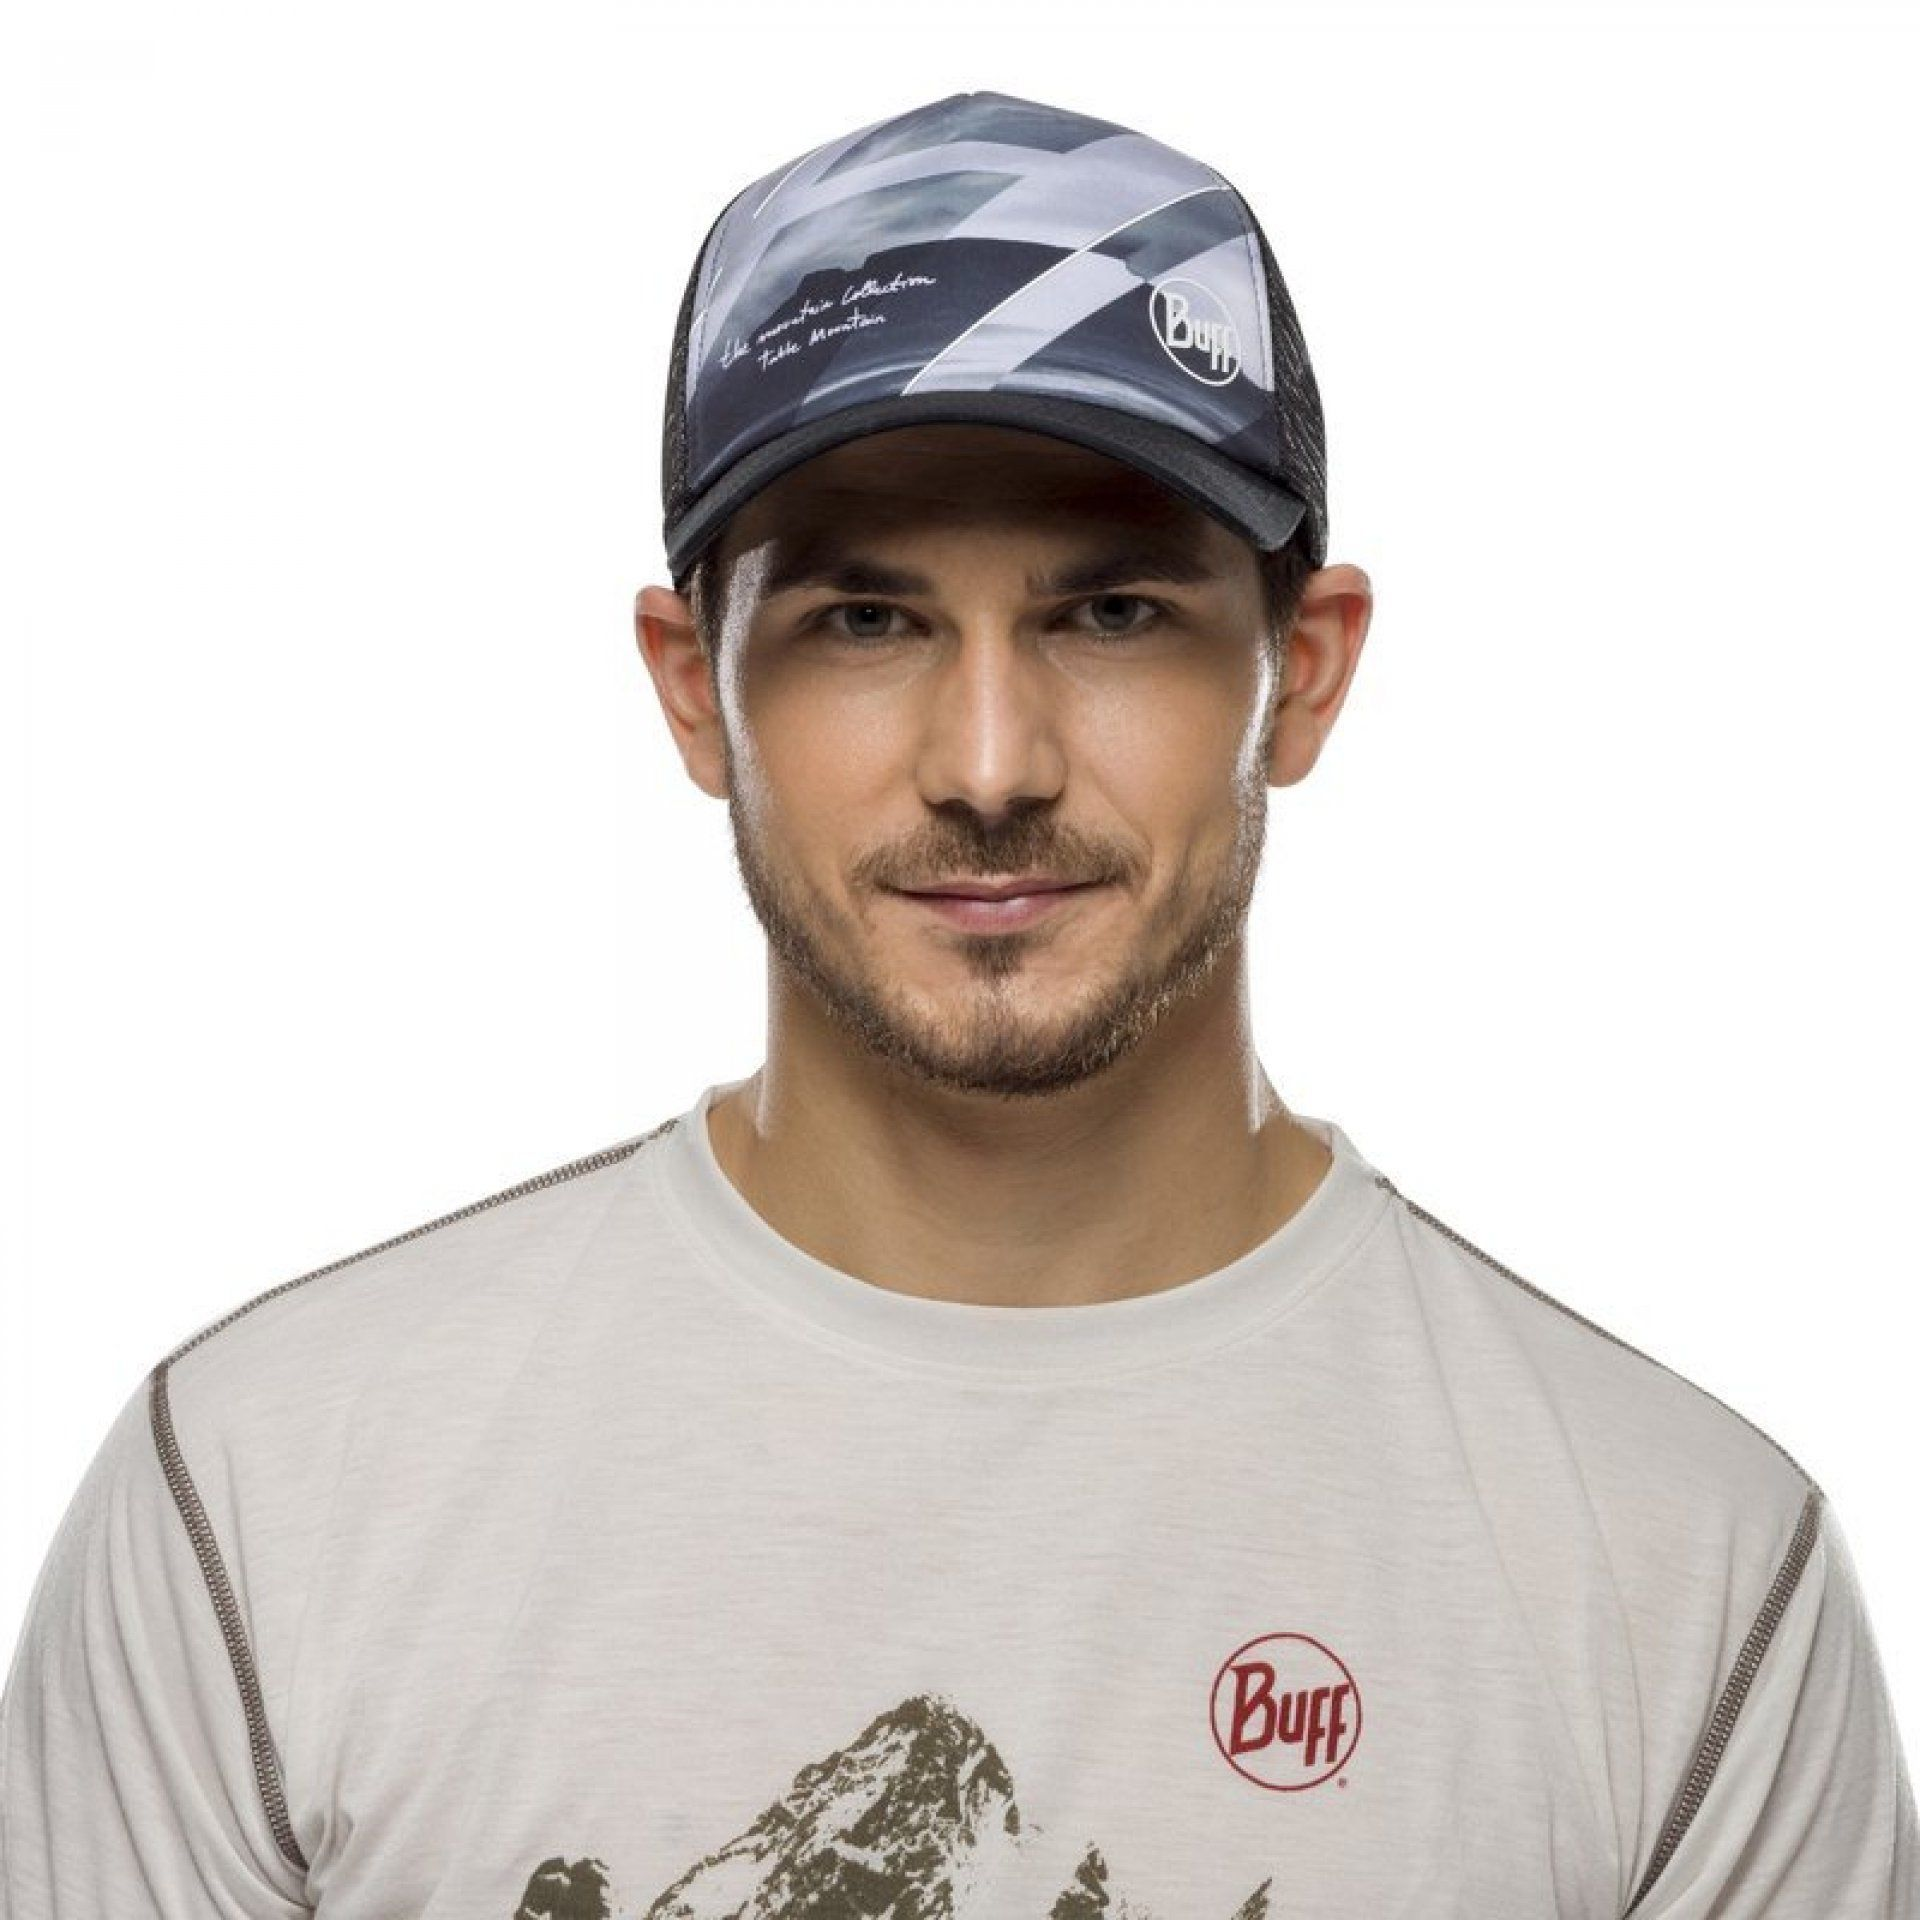 CZAPKA Z DASZKIEM BUFF TRUCKER CAP TABLE MOUNTAIN BLACK NA MODELU